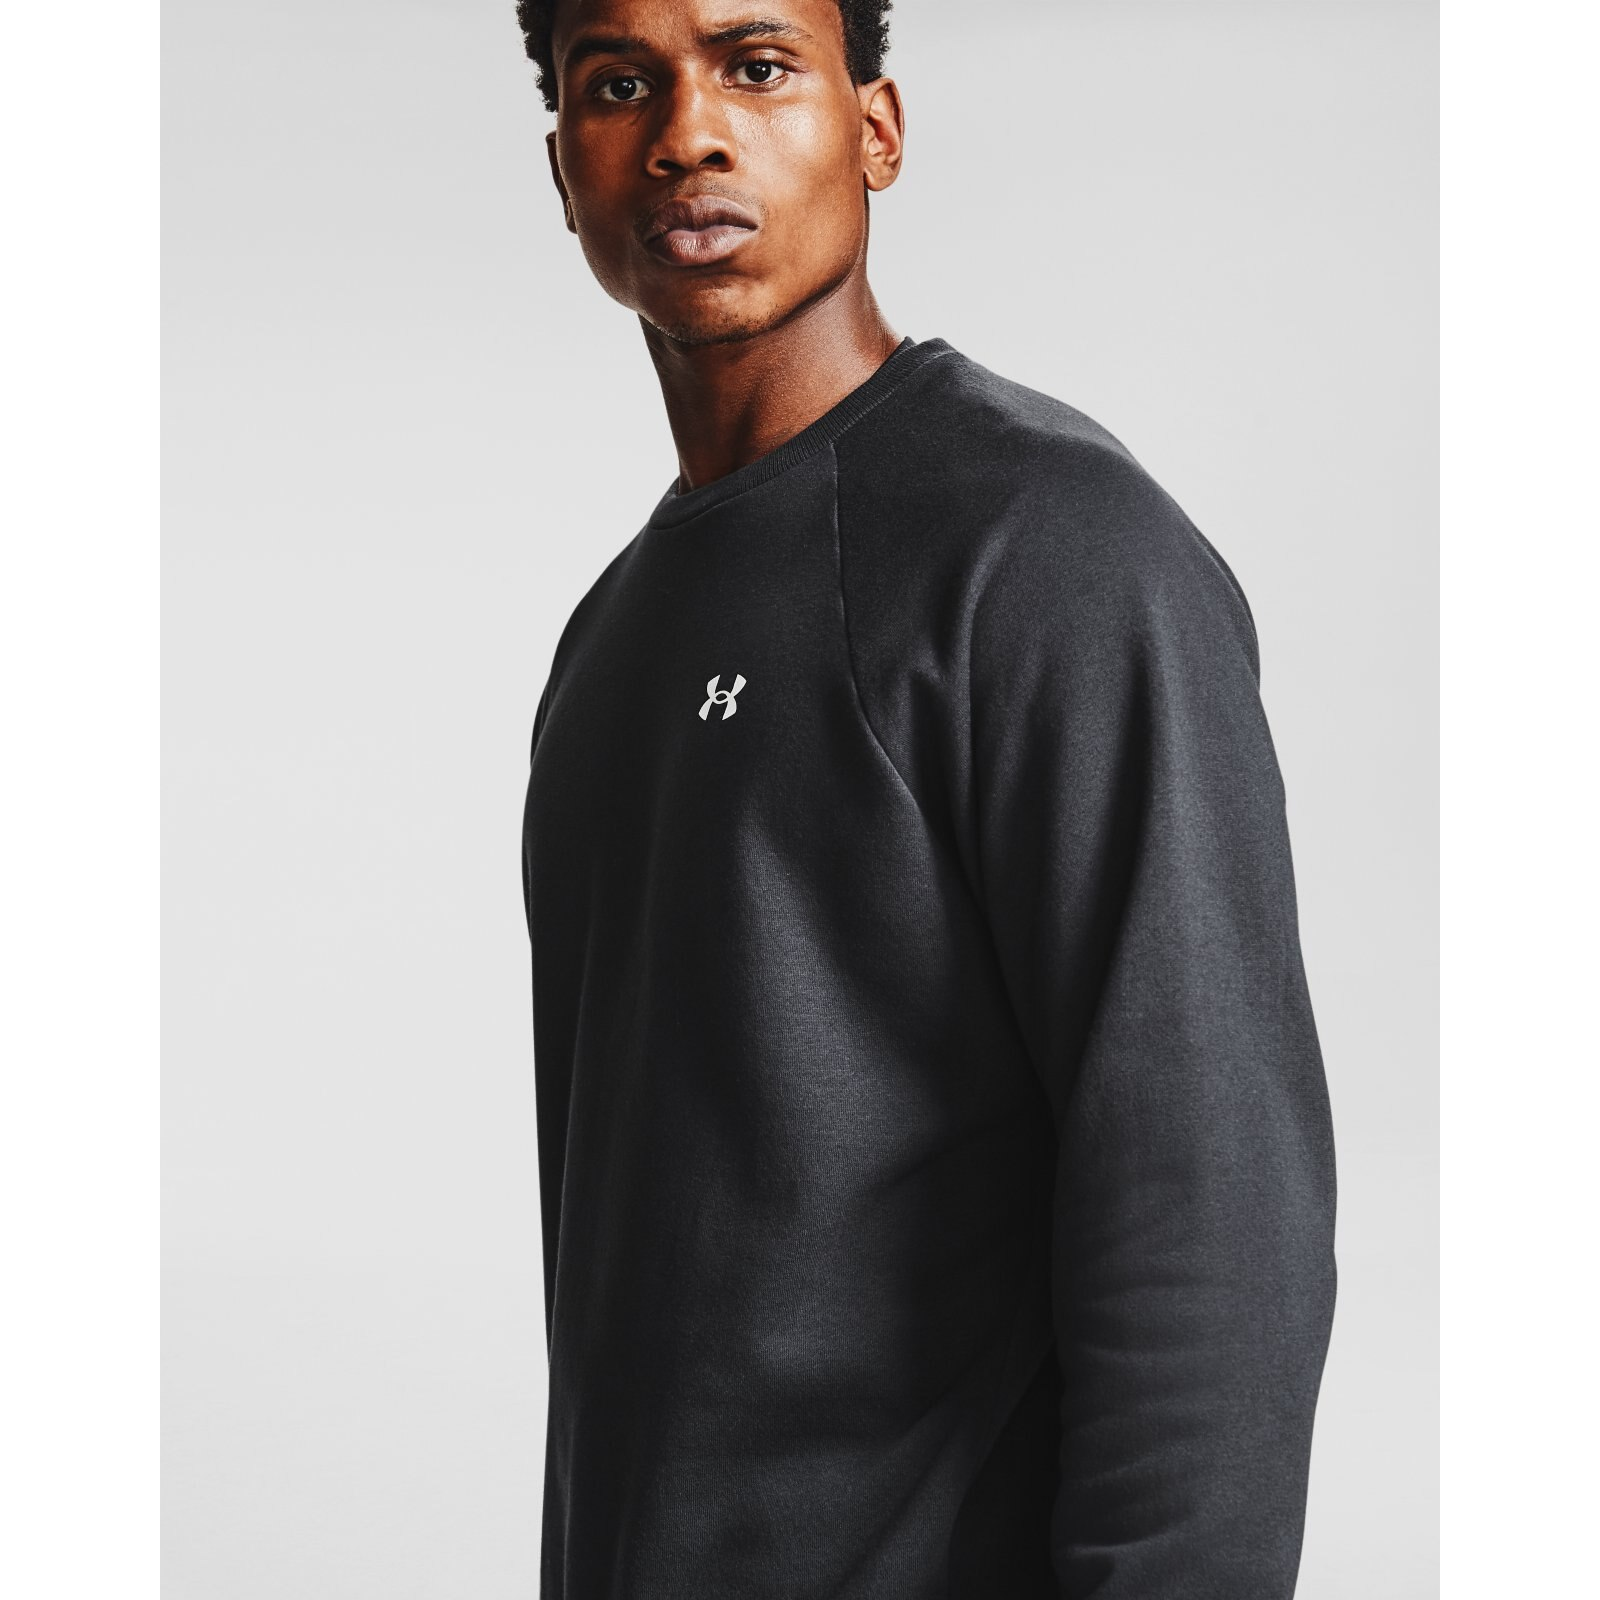 Свитшот Rival Cotton Crew Under Armour Черный фото 4